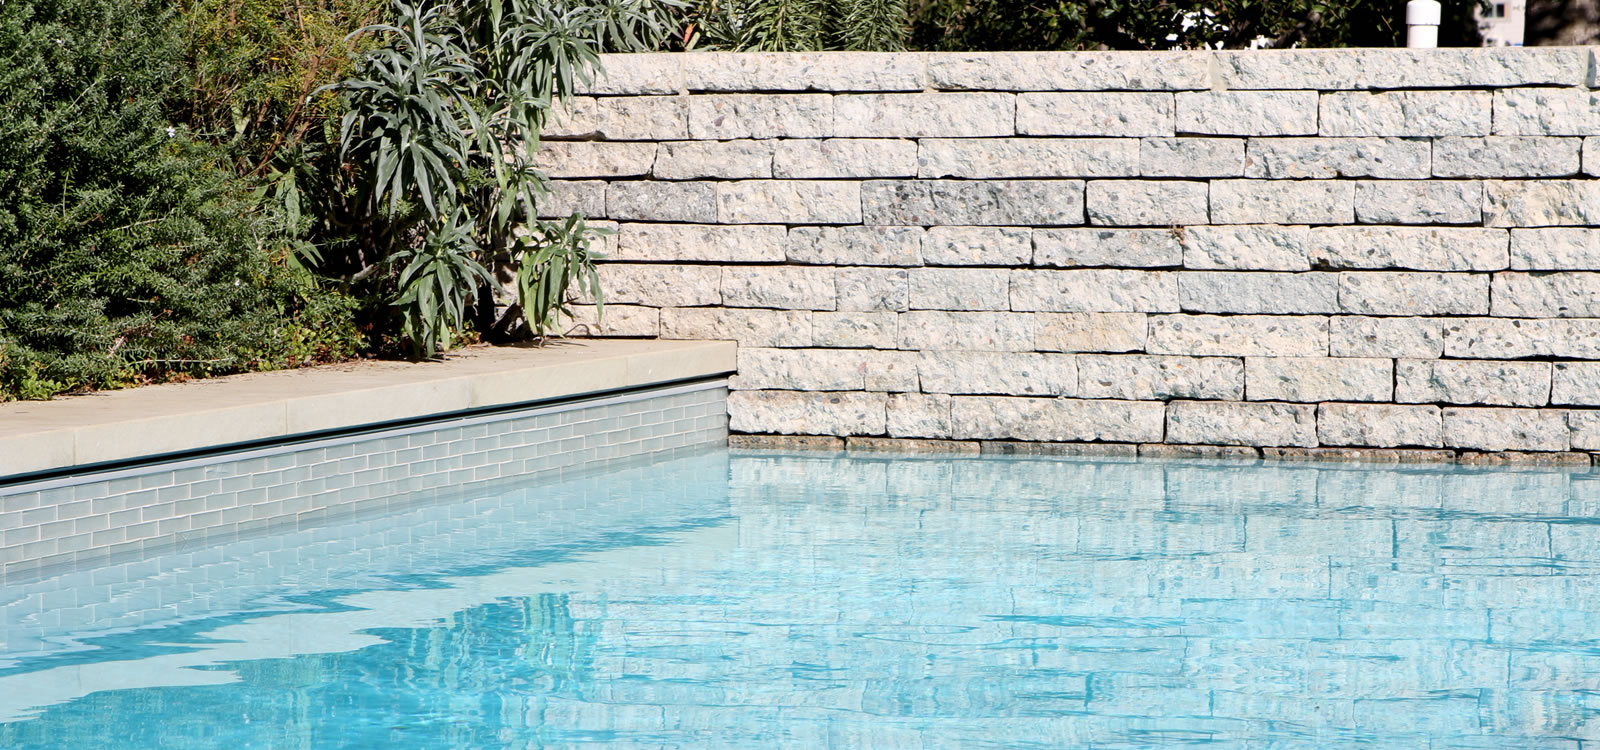 Los Angeles Pool & Spa Design with BBQ Island and Fire Feature